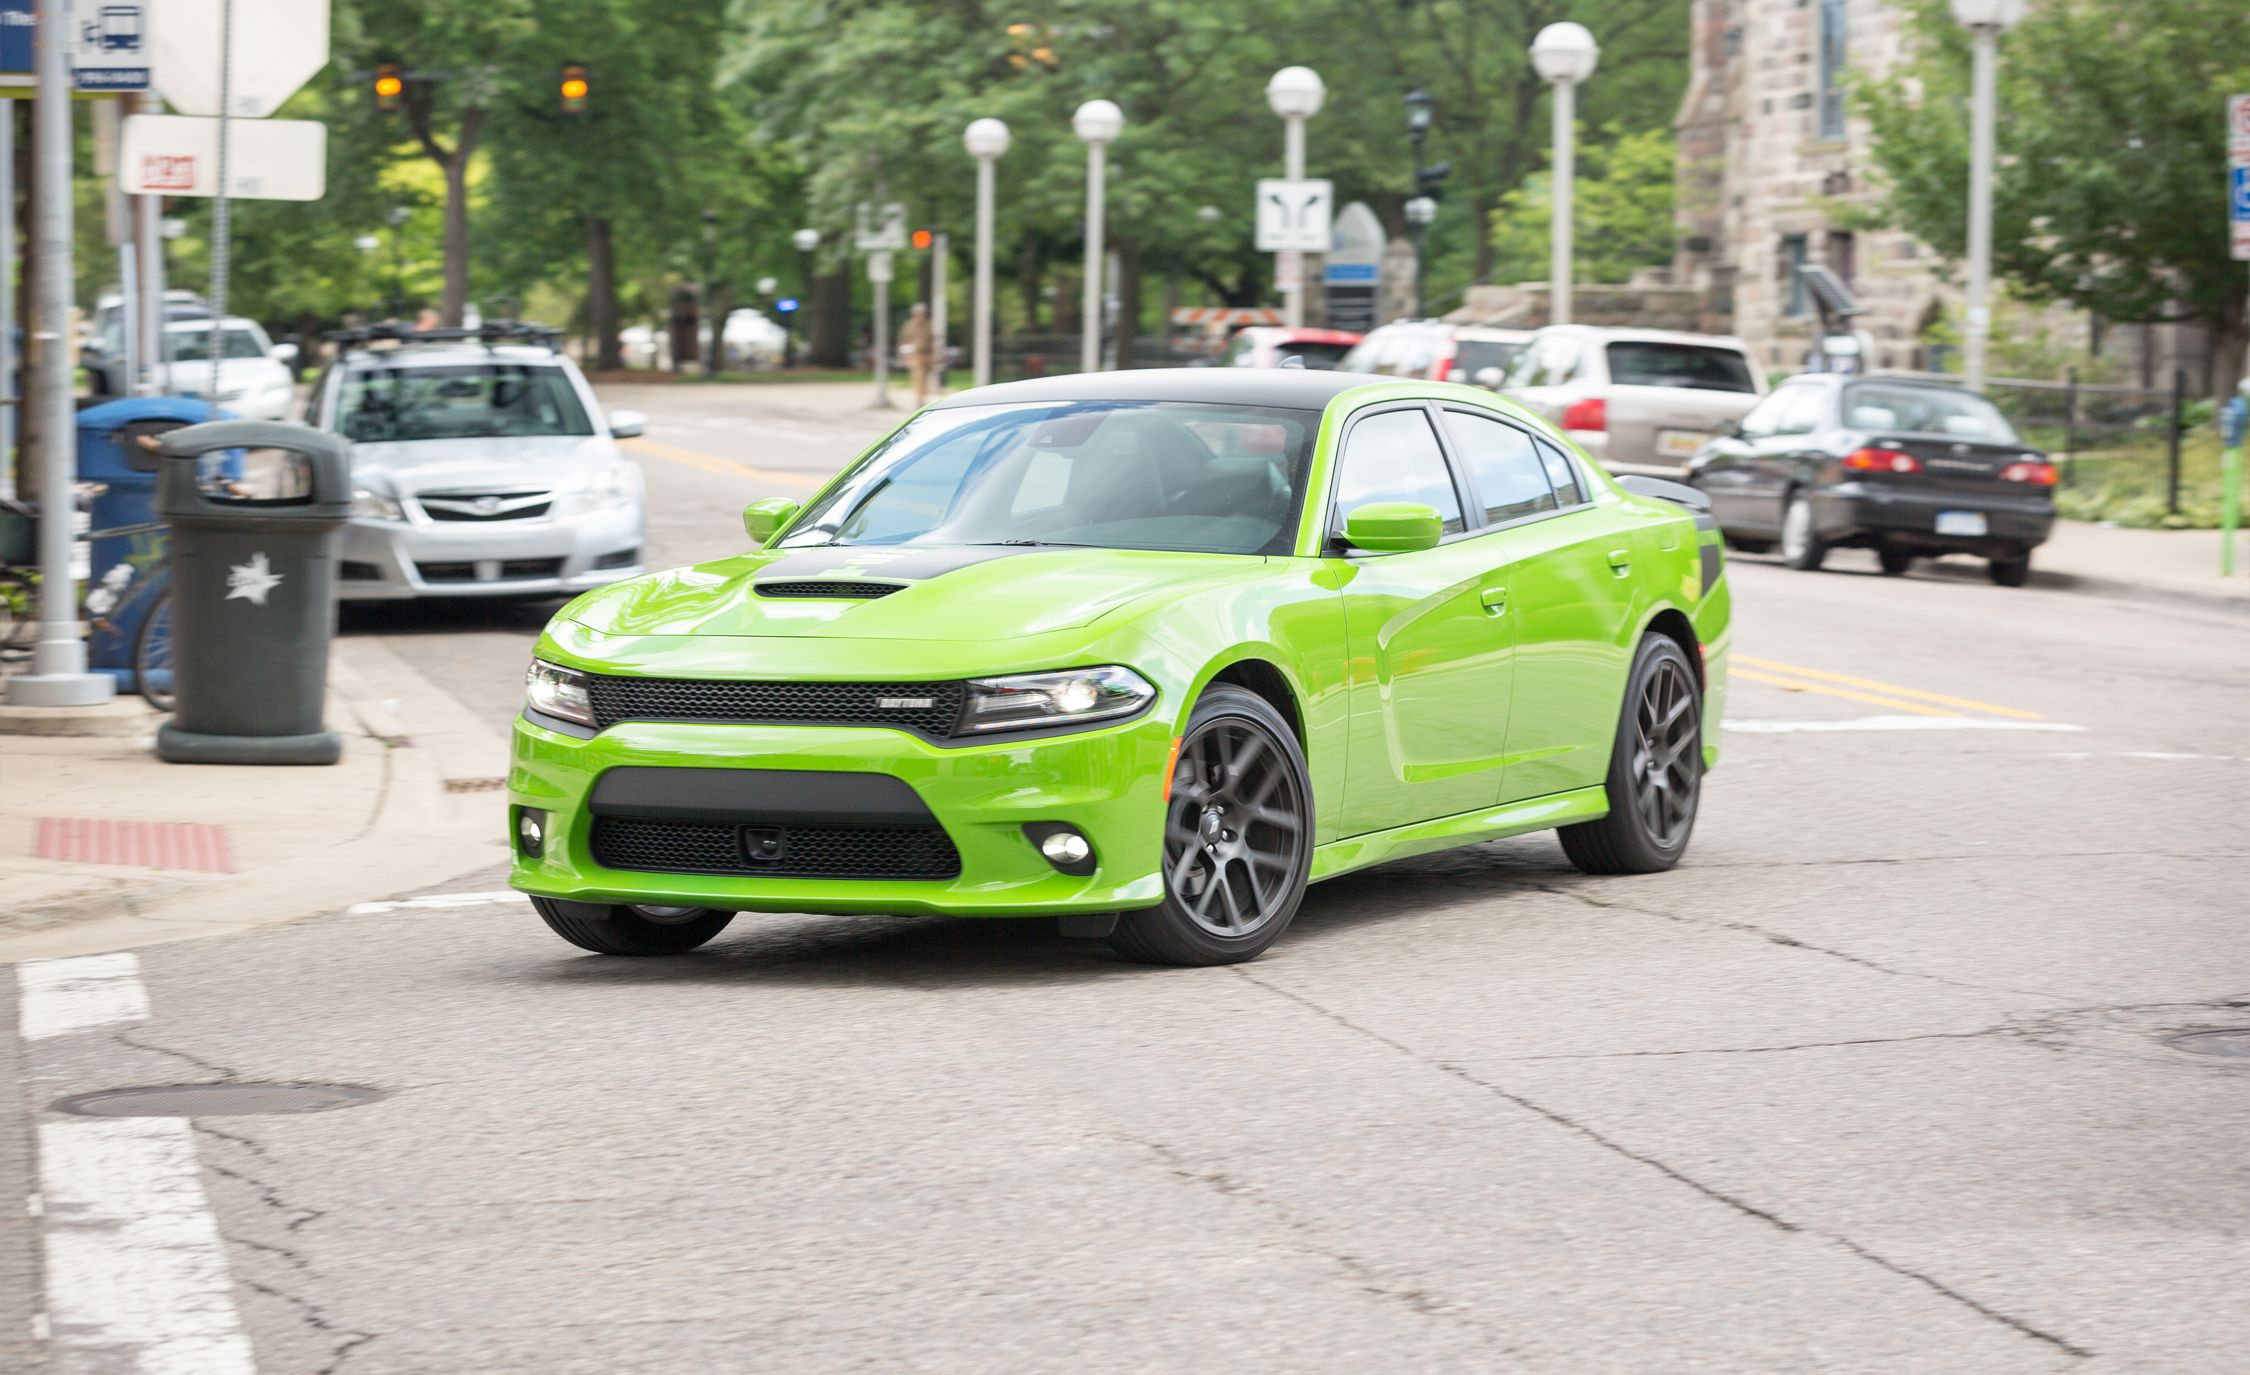 Daytona Charger 2017 Black >> 2017 Dodge Charger Daytona 5 7l Test Review Car And Driver